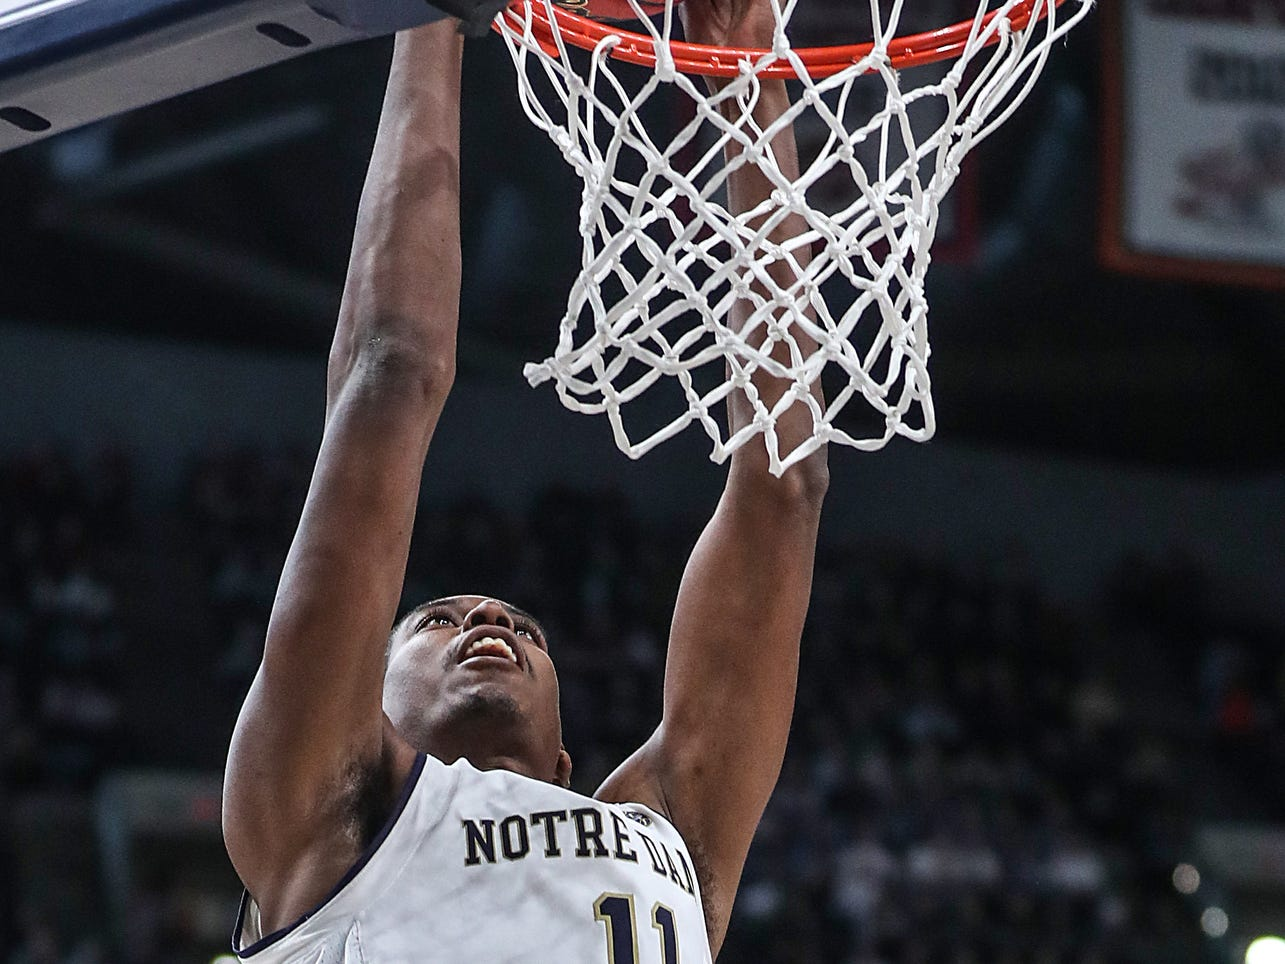 Notre Dame Fighting Irish forward Juwan Durham (11) dunks in the first half of the Crossroads Classic game between Purdue and Notre Dame at Banker's Life Fieldhouse in Indianapolis, Saturday, Dec. 15, 2018.